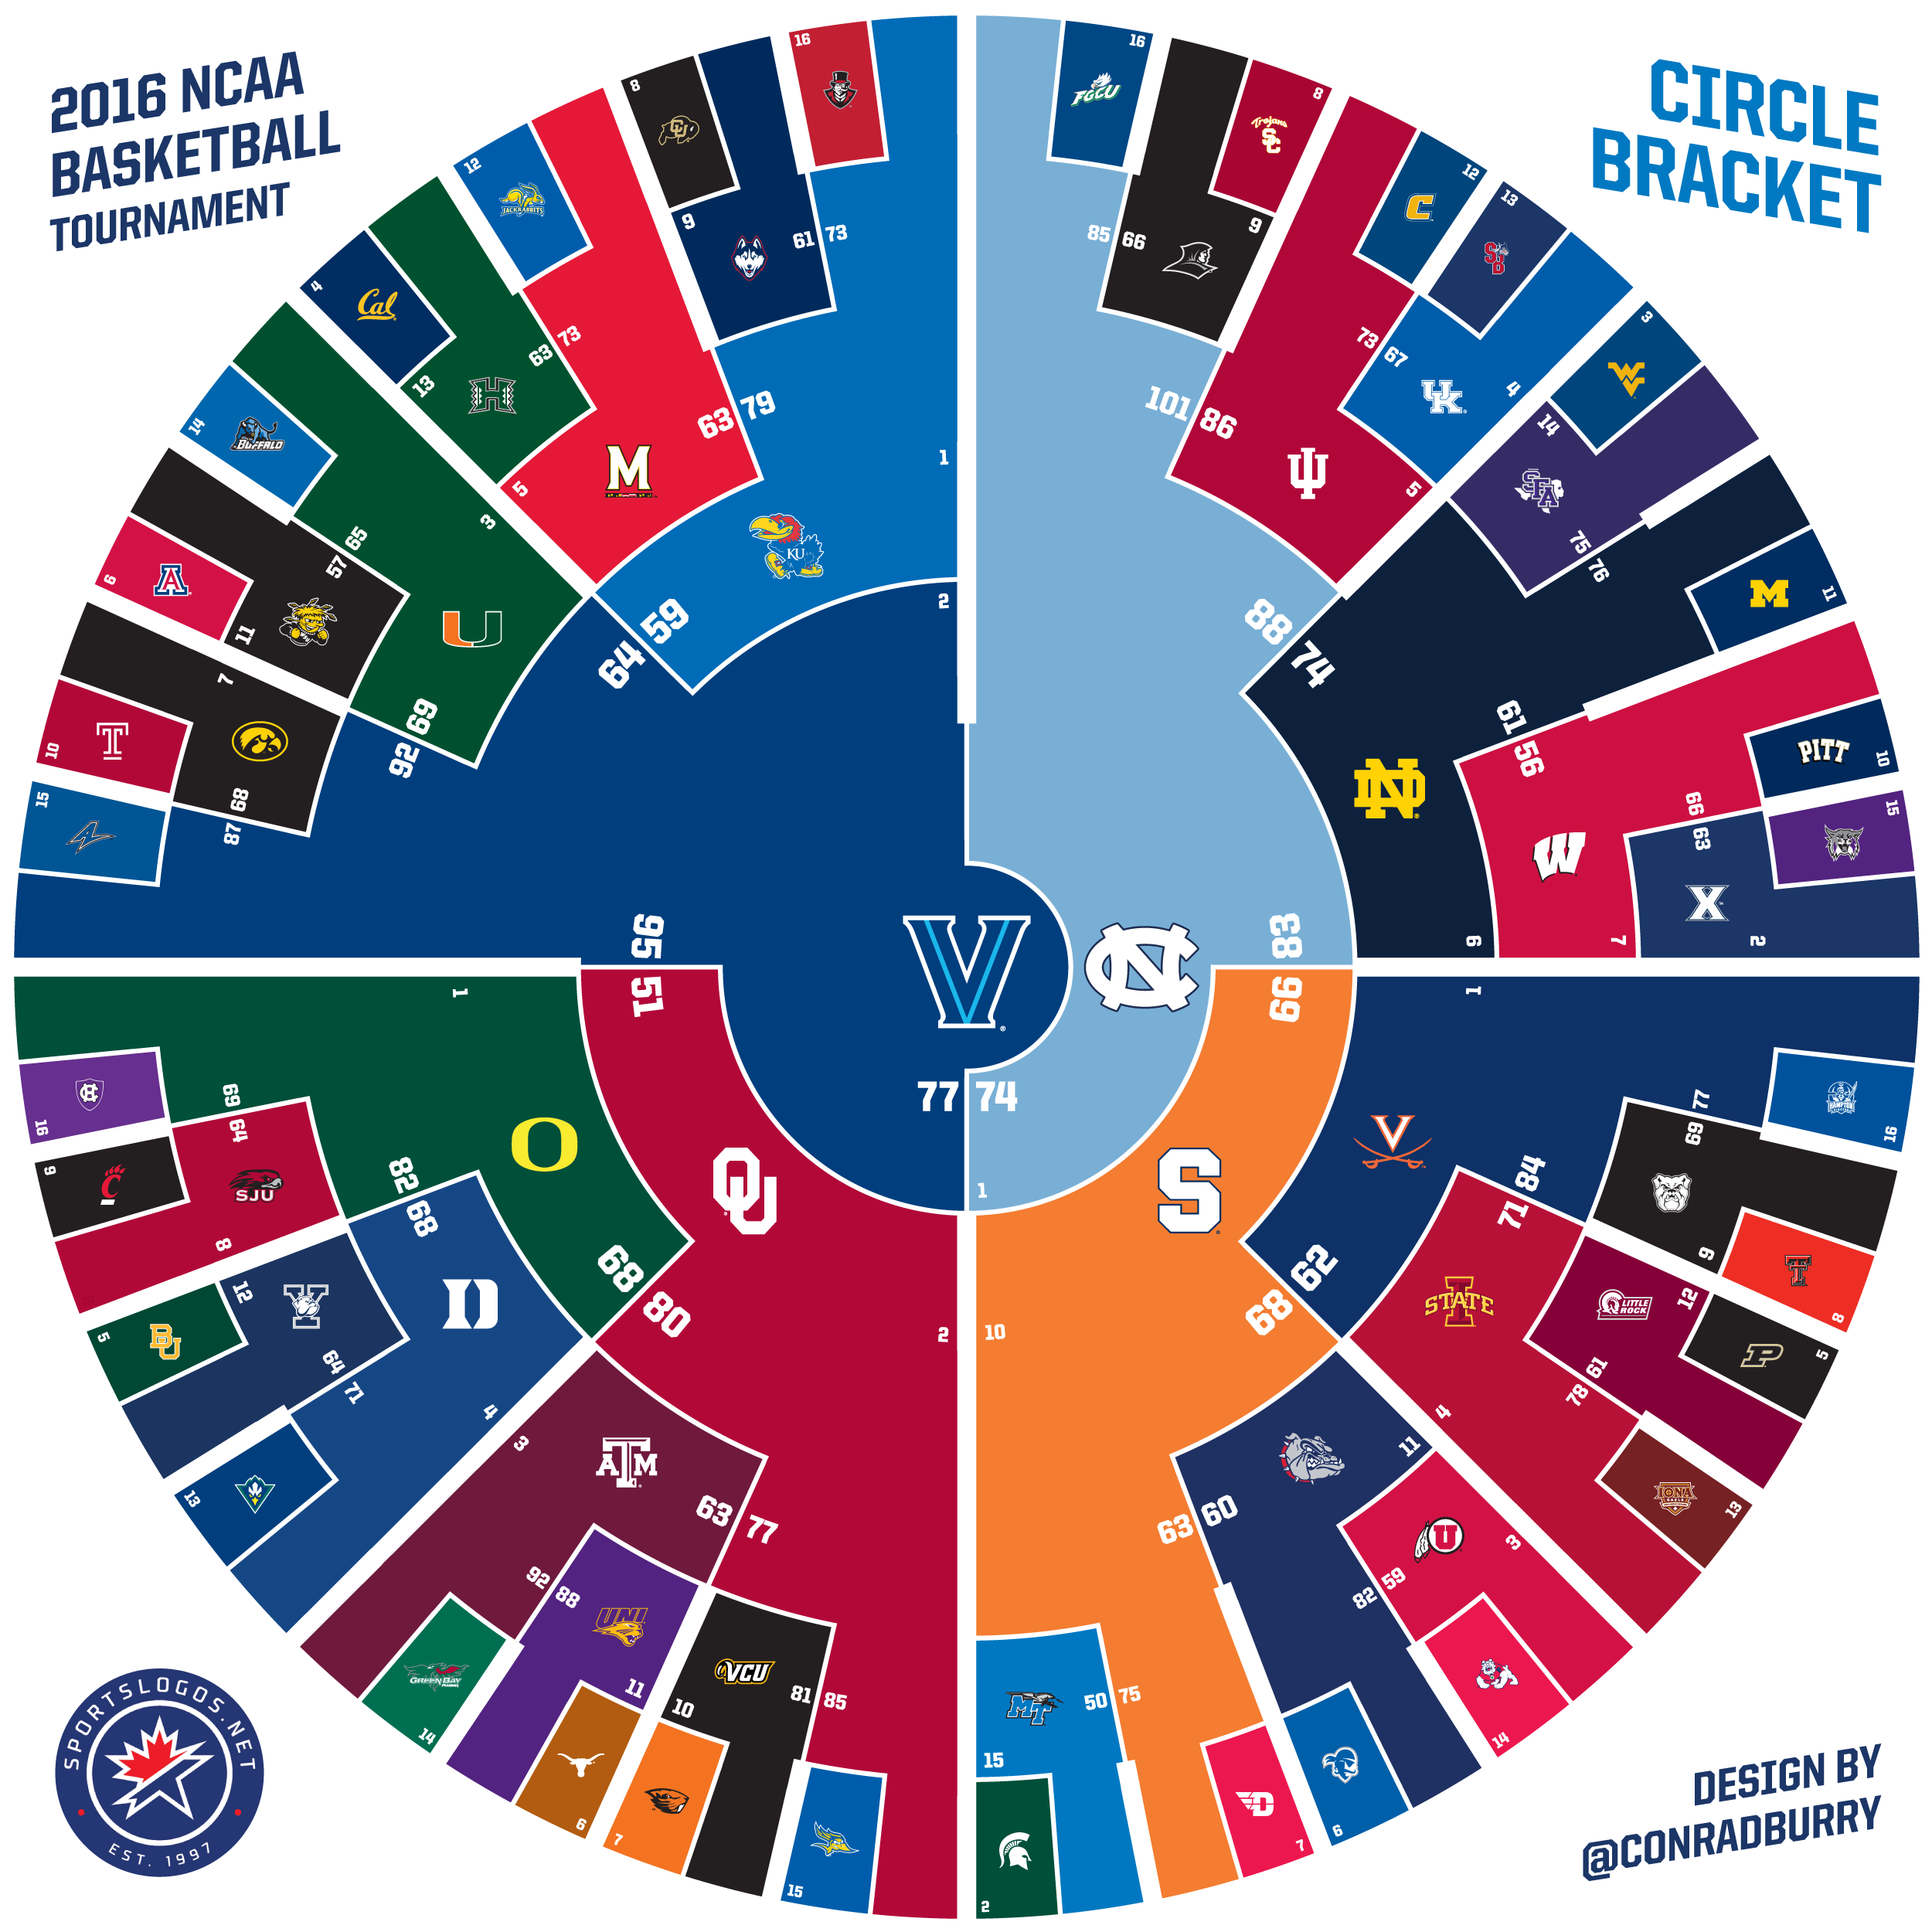 a different bracket 2016 ncaa march madness circle